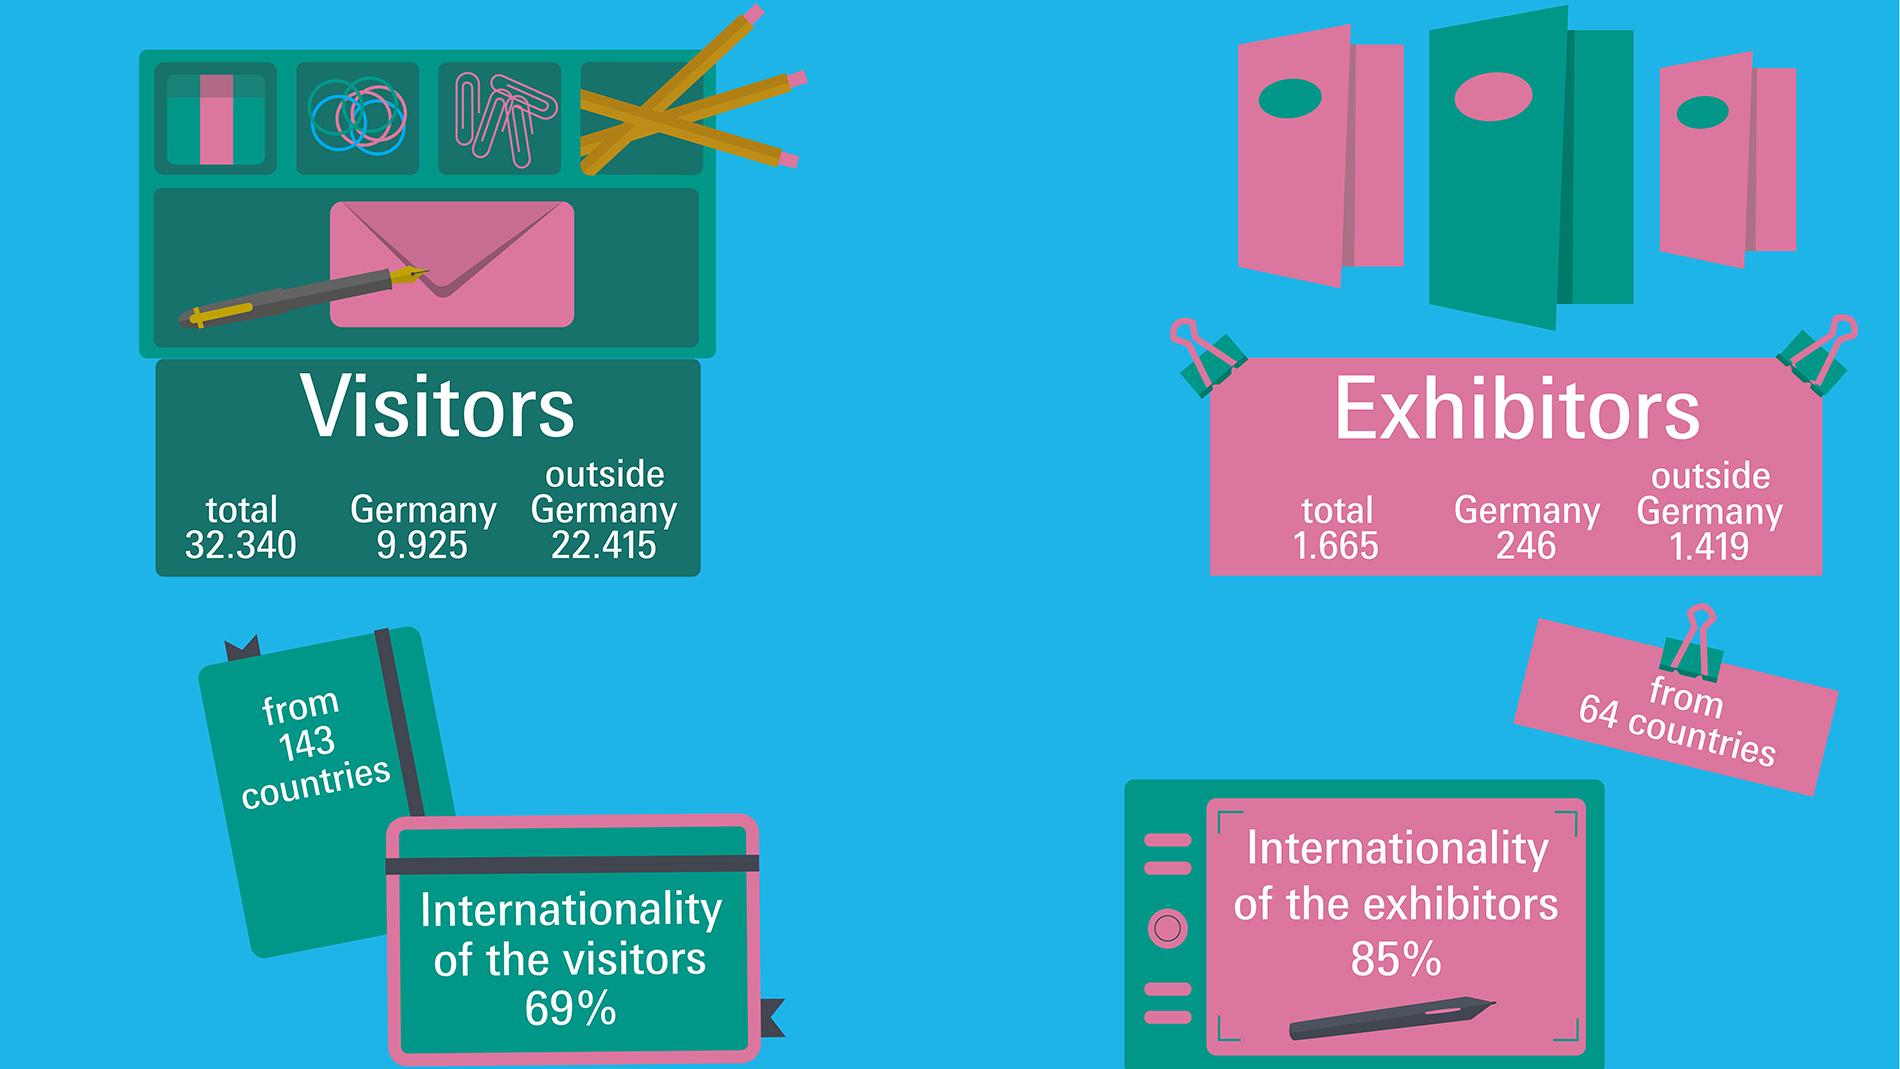 Number of visitors and exhibitors of Paperworld 2019